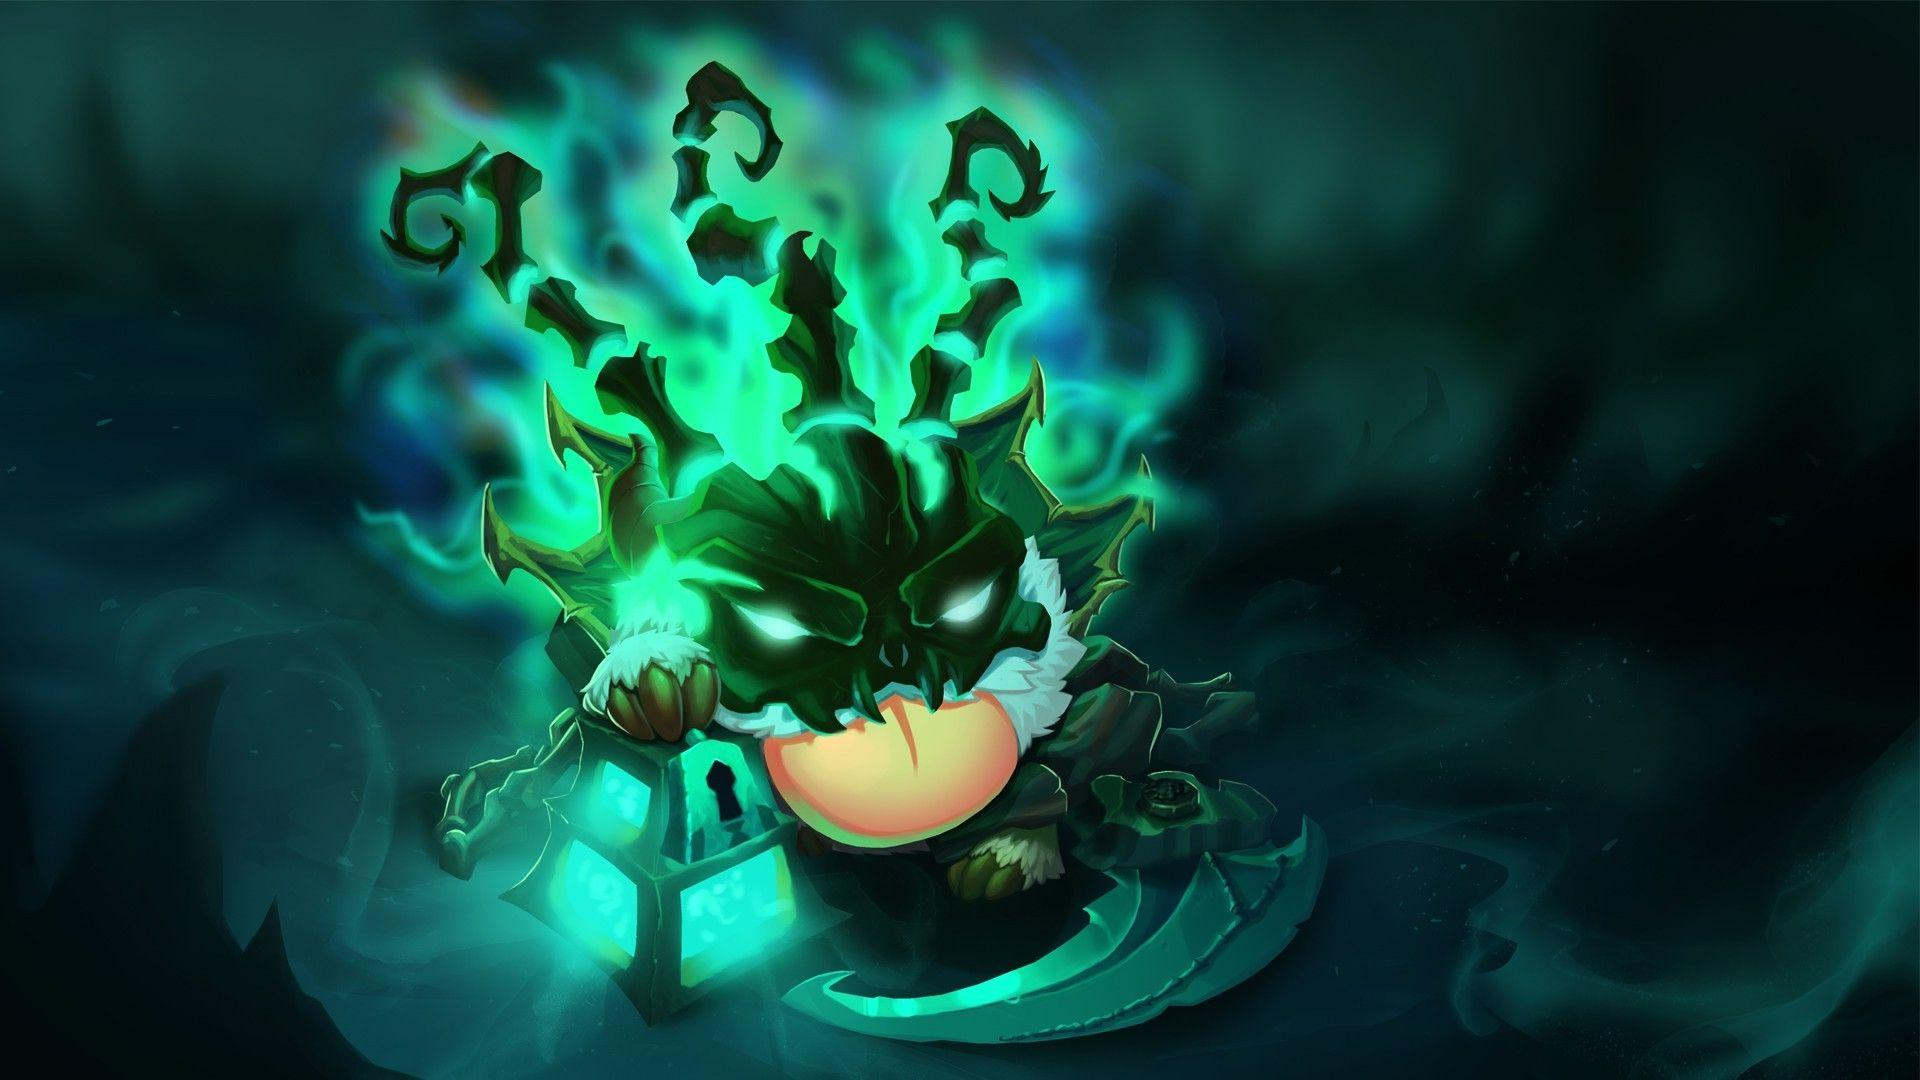 Thresh Hd Mobile Wallpapers Wallpaper Cave